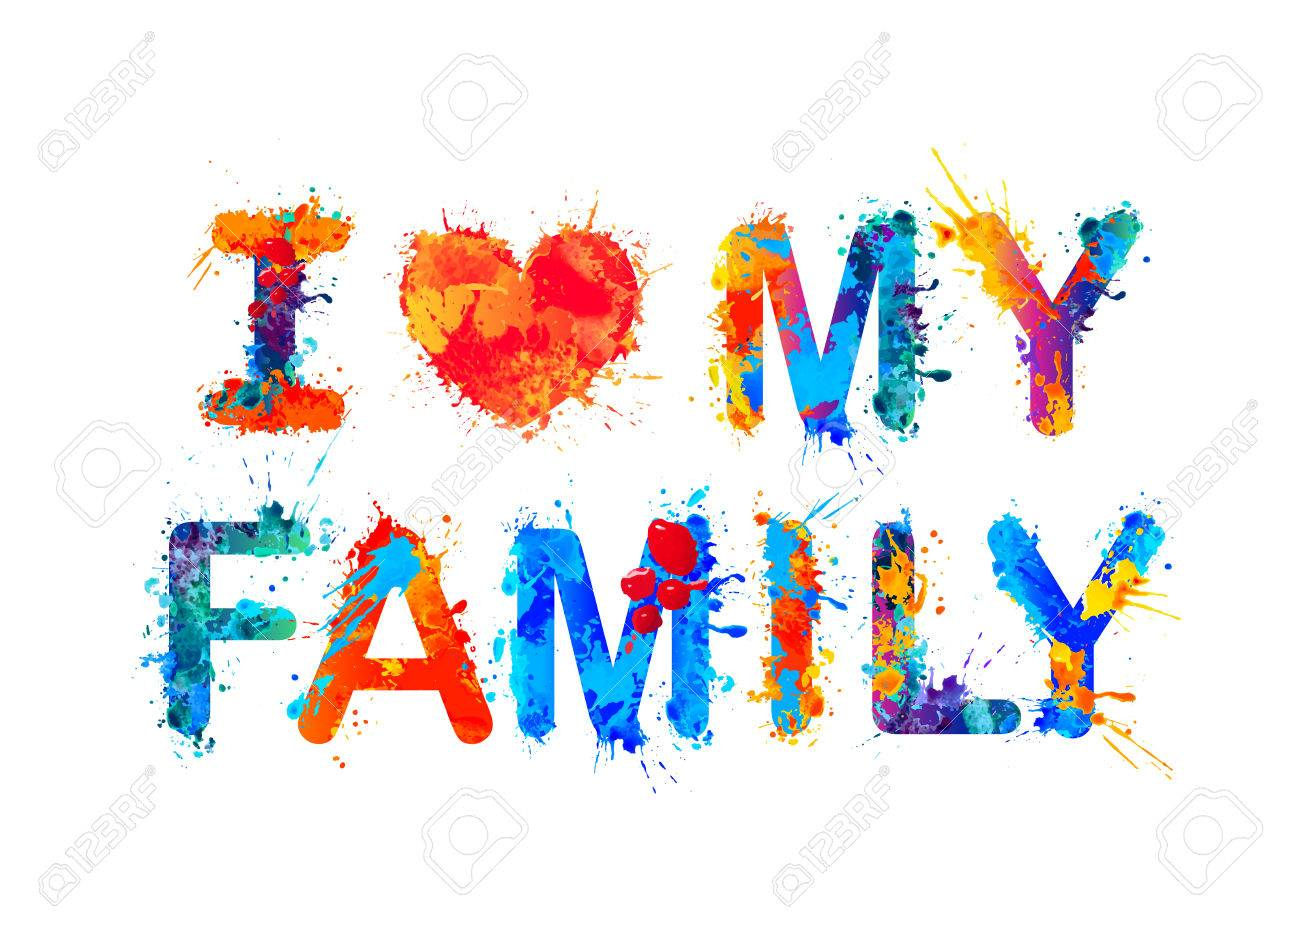 I Love My Family Watercolor Splash Paint Royalty Free Cliparts